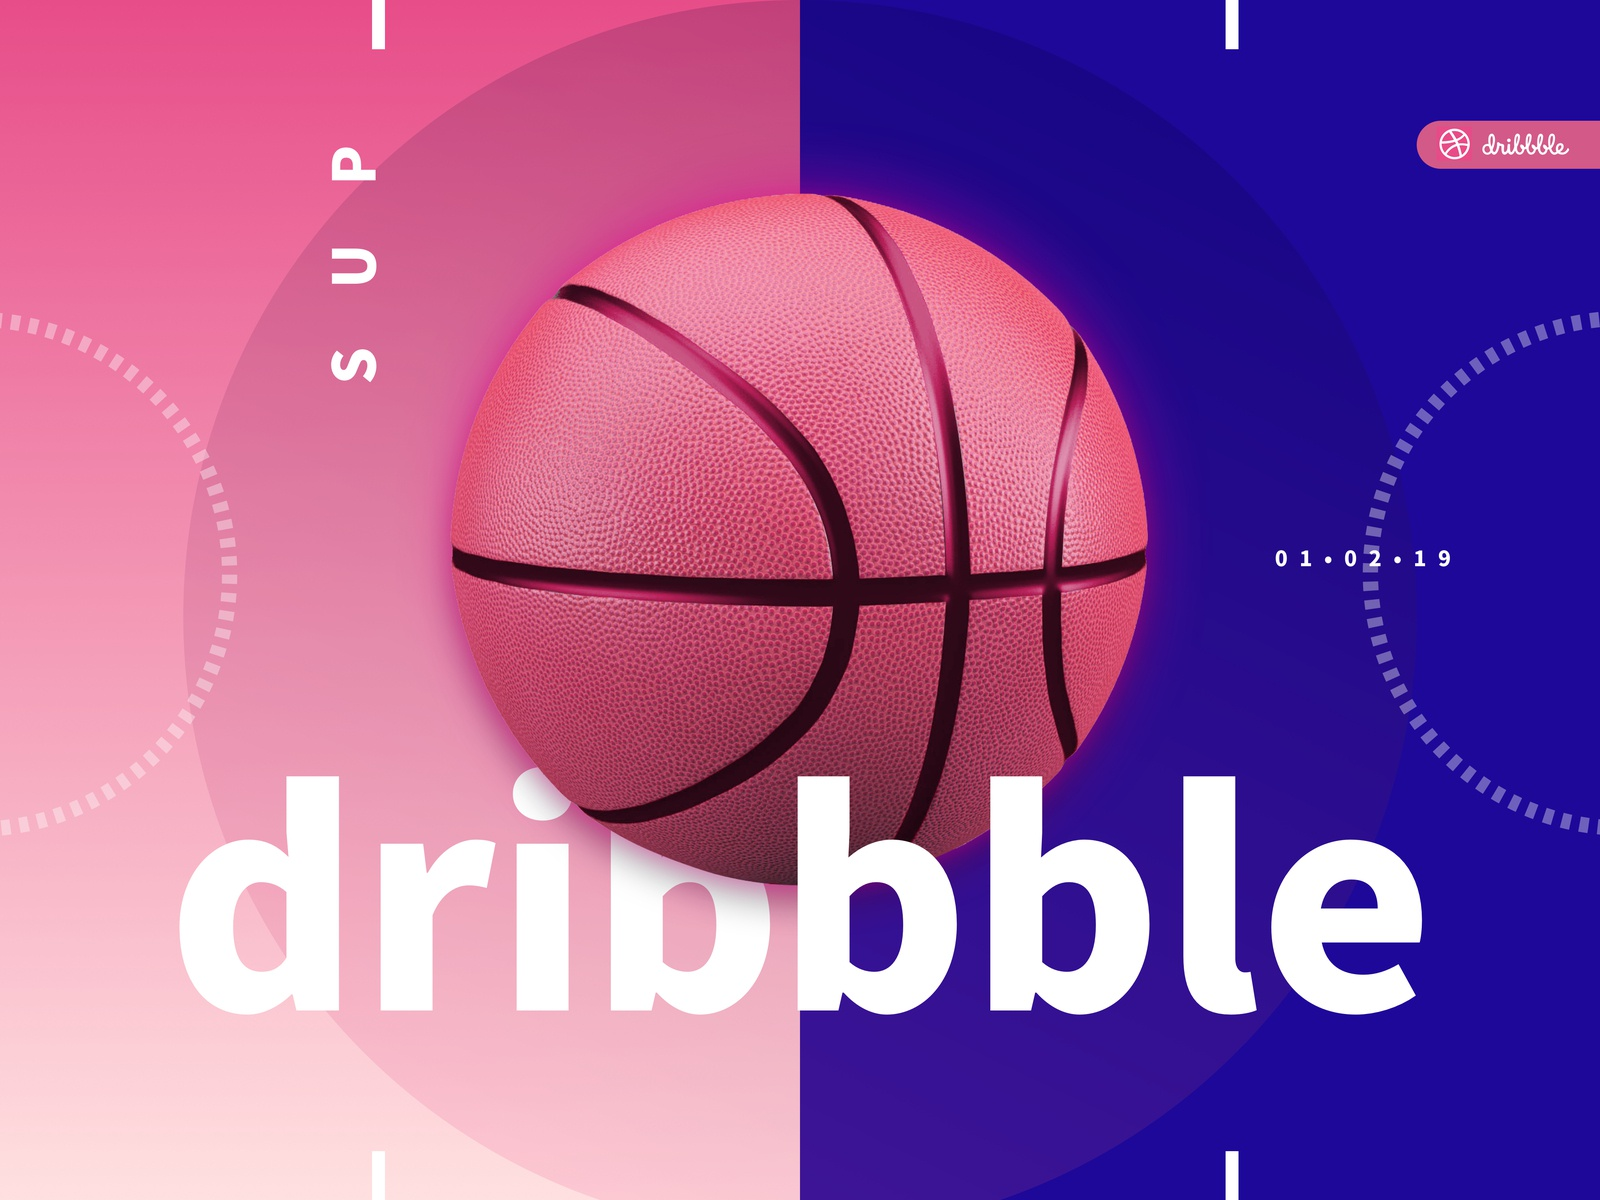 Dribbble by zooybb on Dribbble